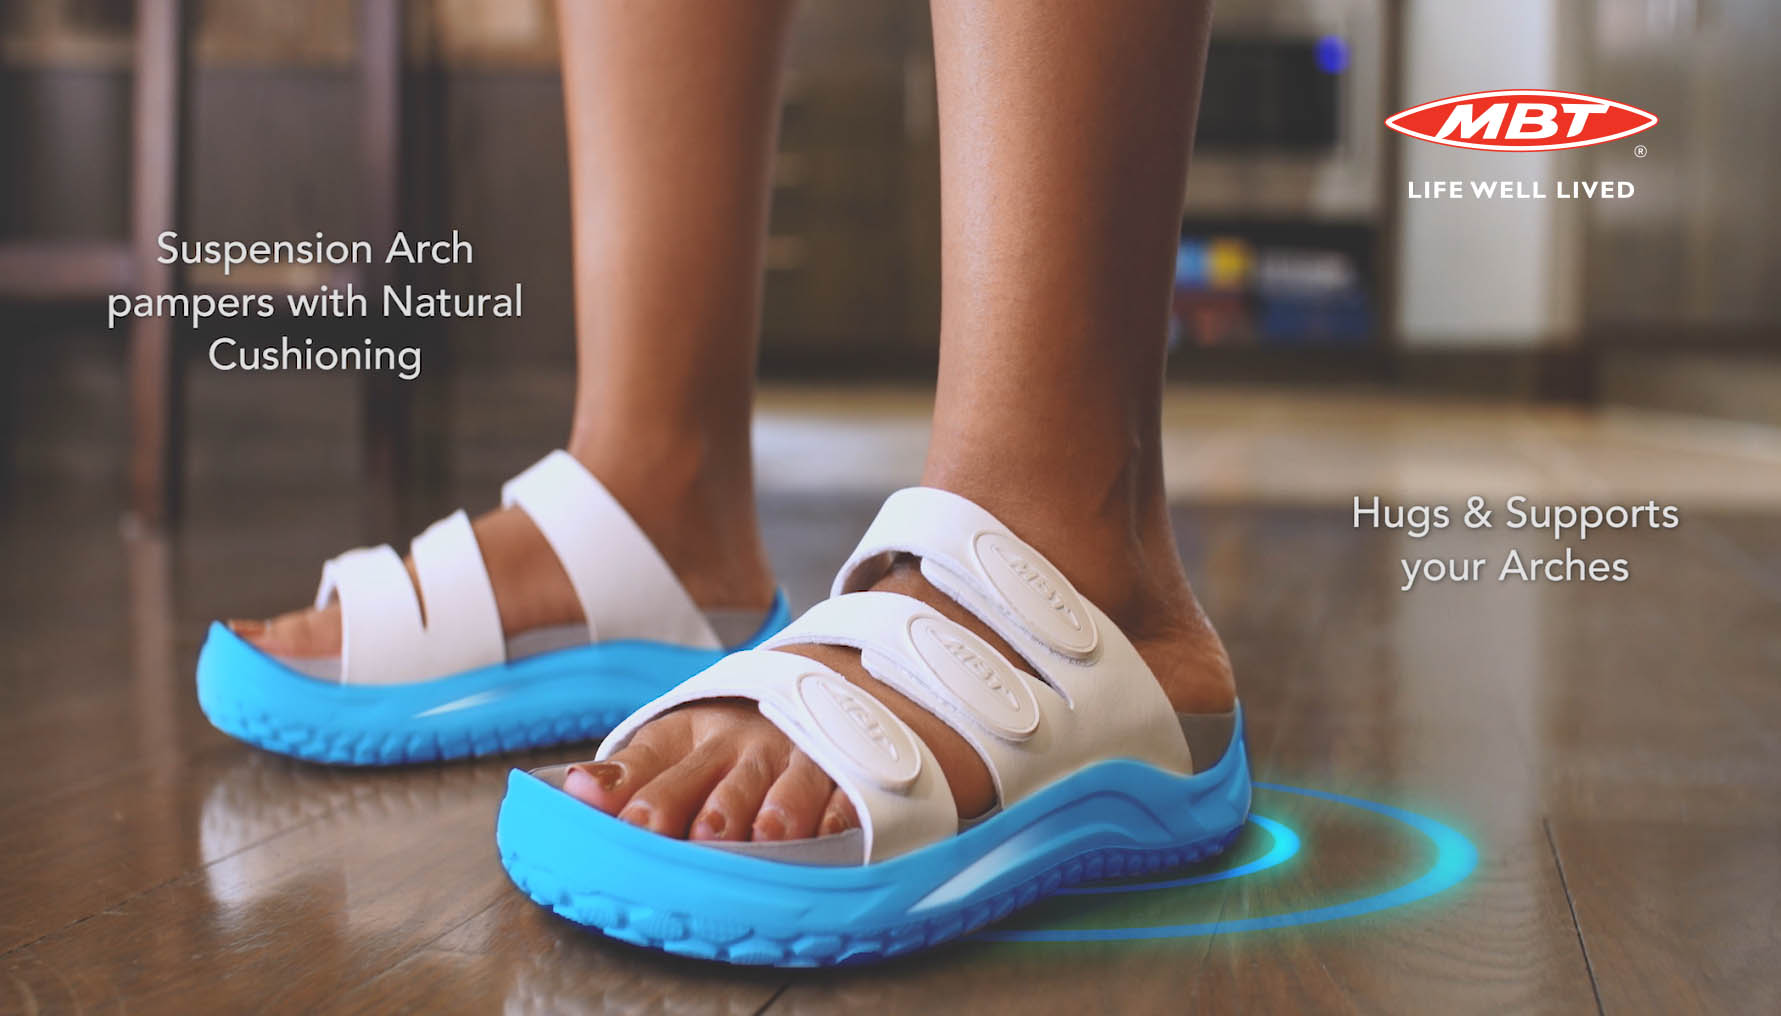 NEW MBT RECOVERY SANDALS